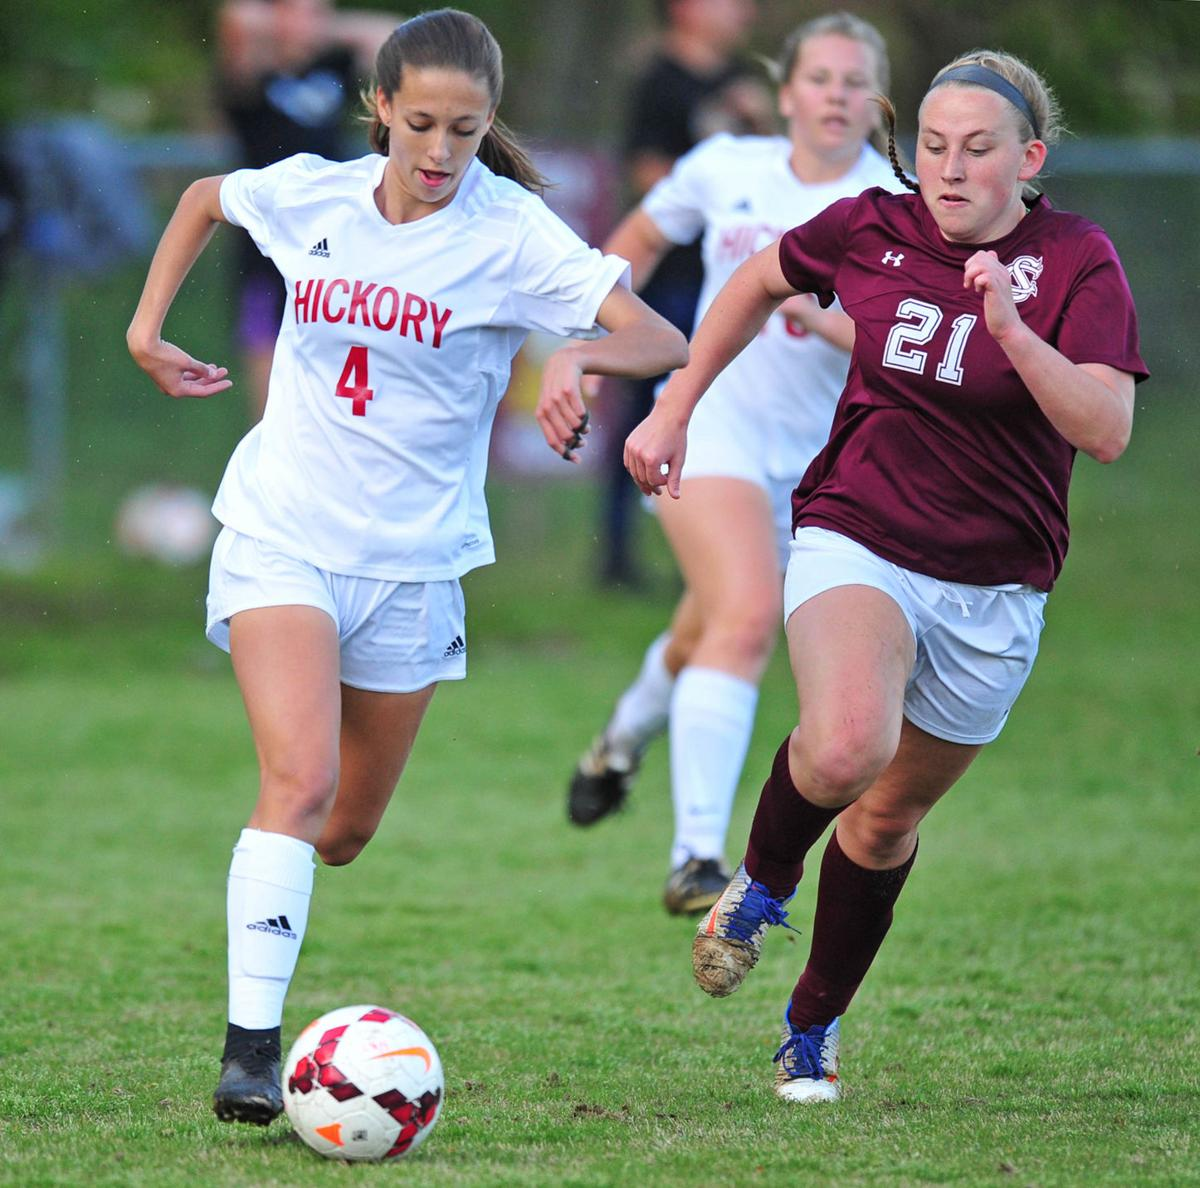 Hickory downs conference leader South Caldwell in wild girls